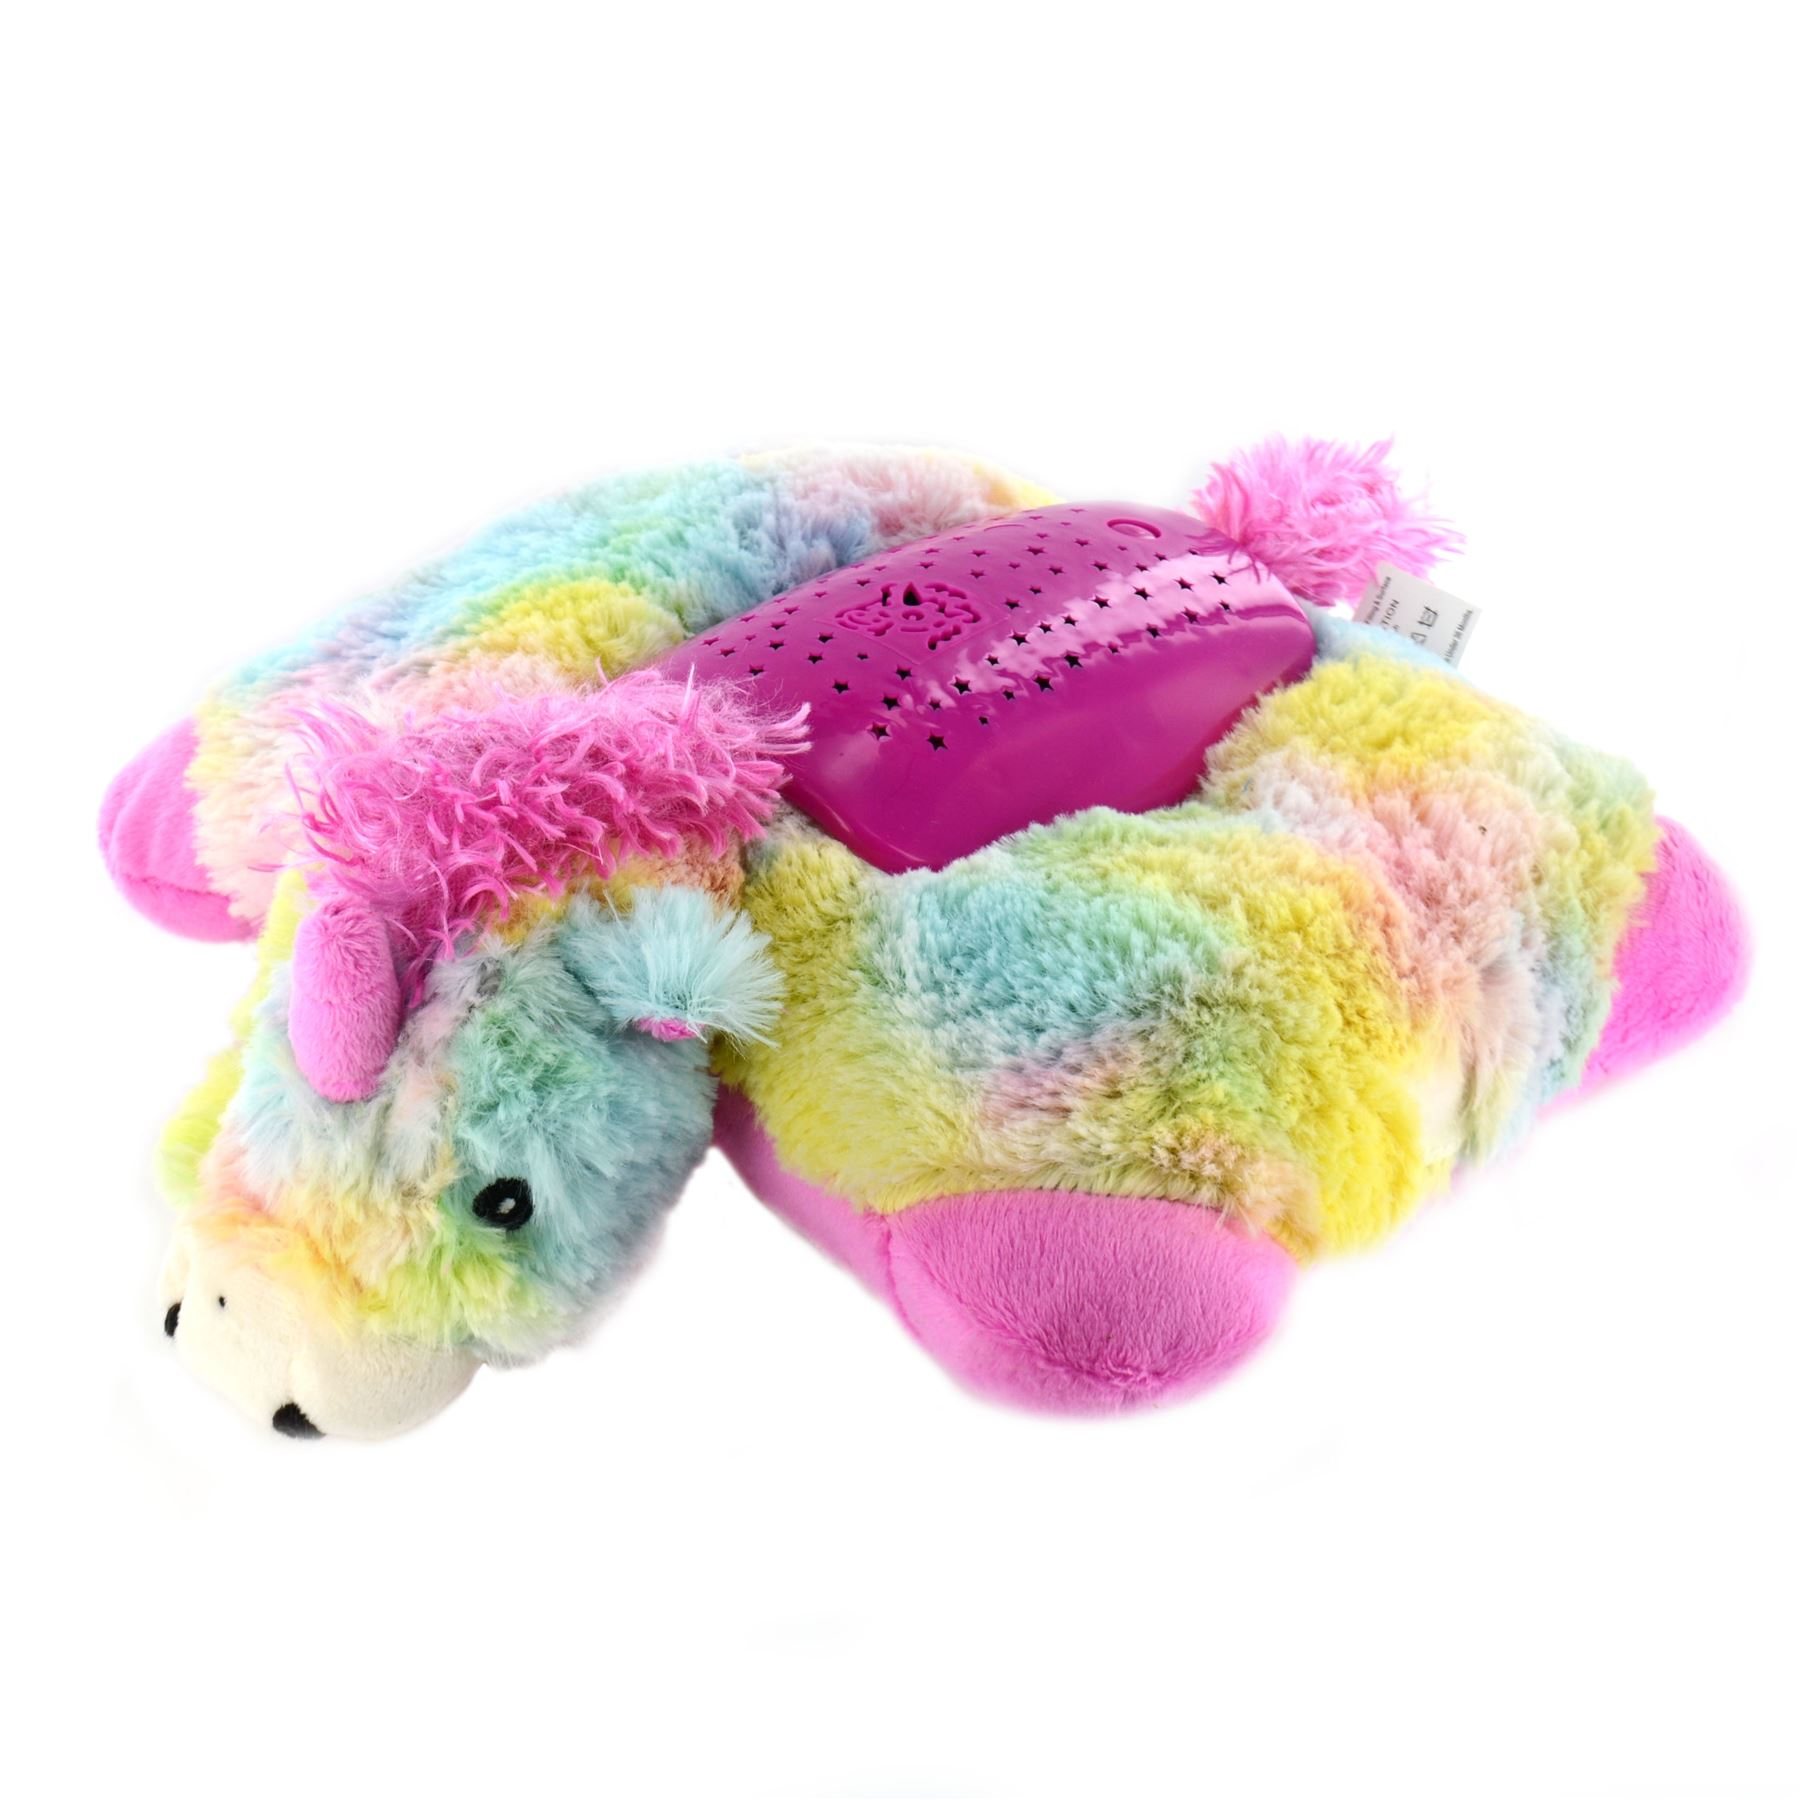 Bright Light Animal Pillow Pets : Pillow Pets Night Lights Kids Cuddly Animal Cushion Toy Bedroom Star Projector eBay